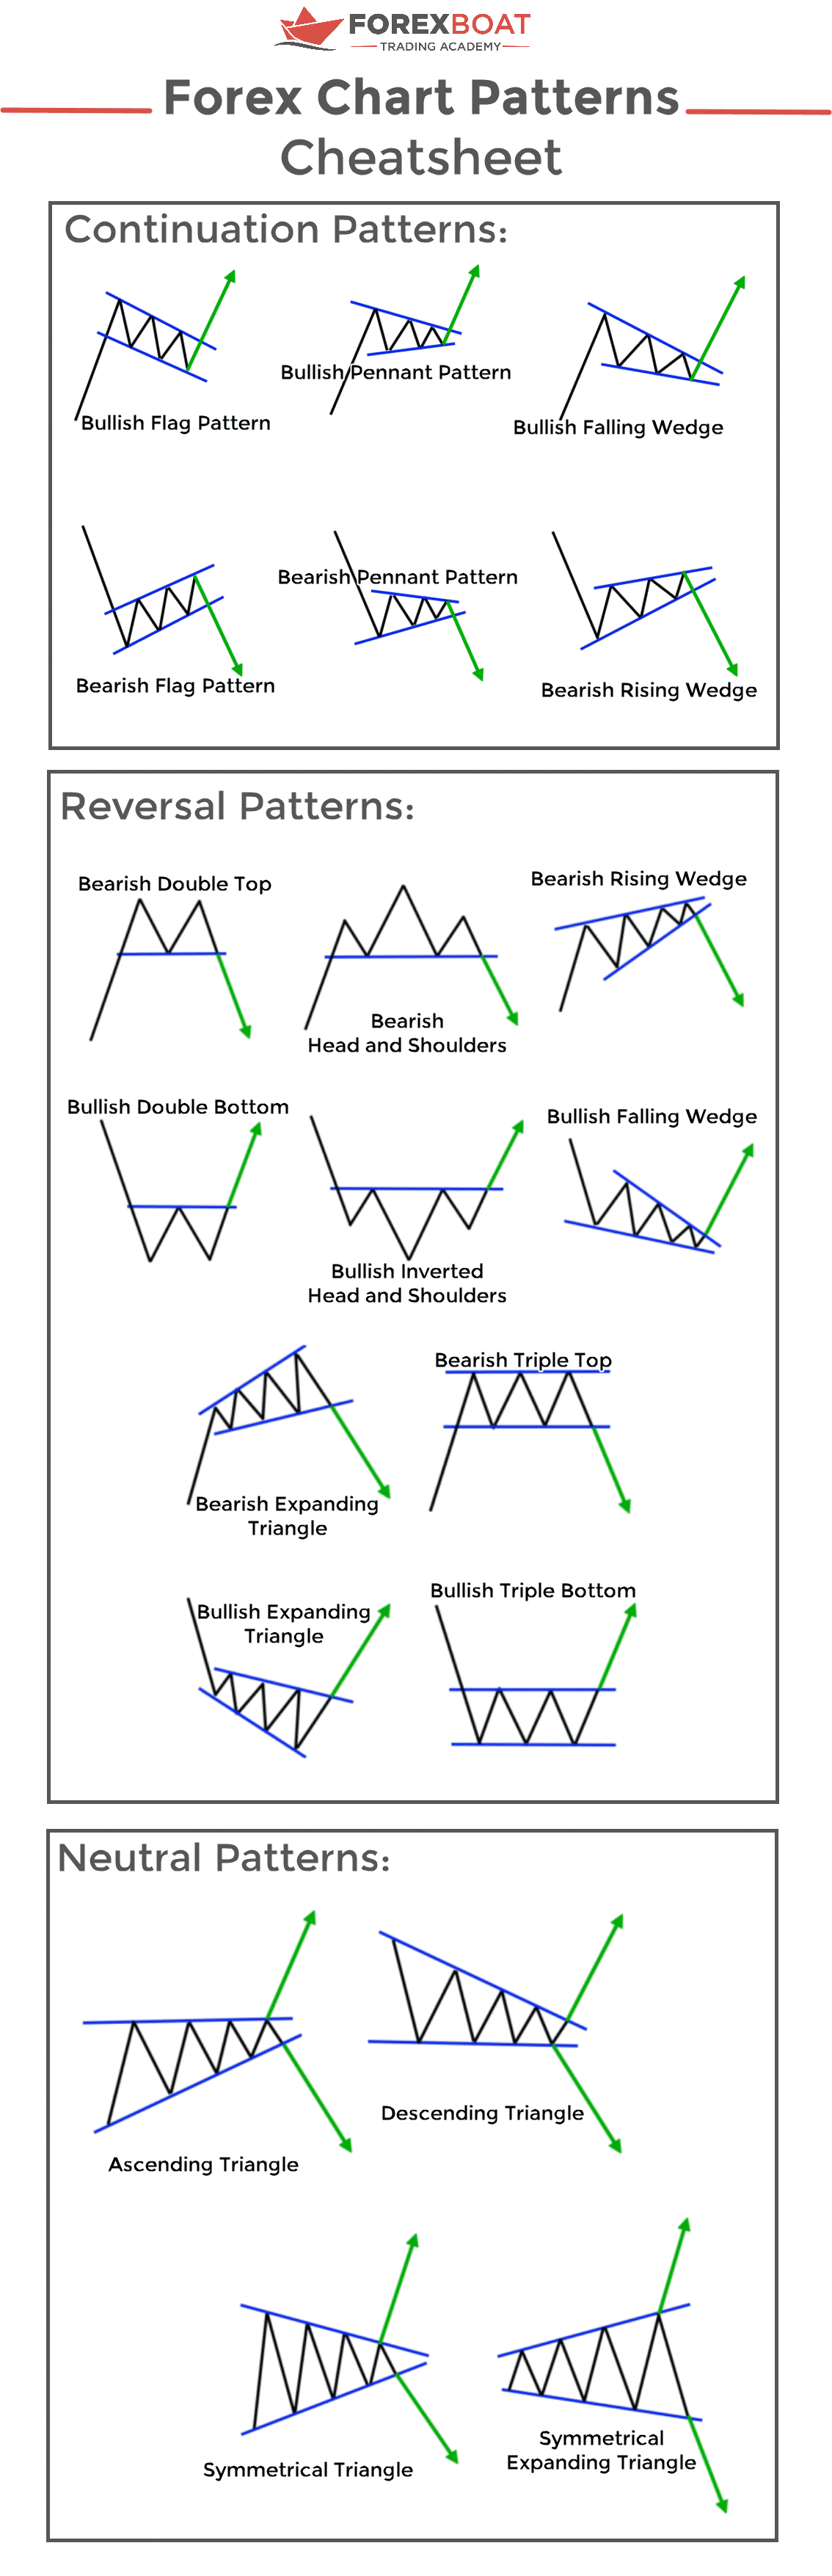 Forex Chart Patterns Cheatsheet